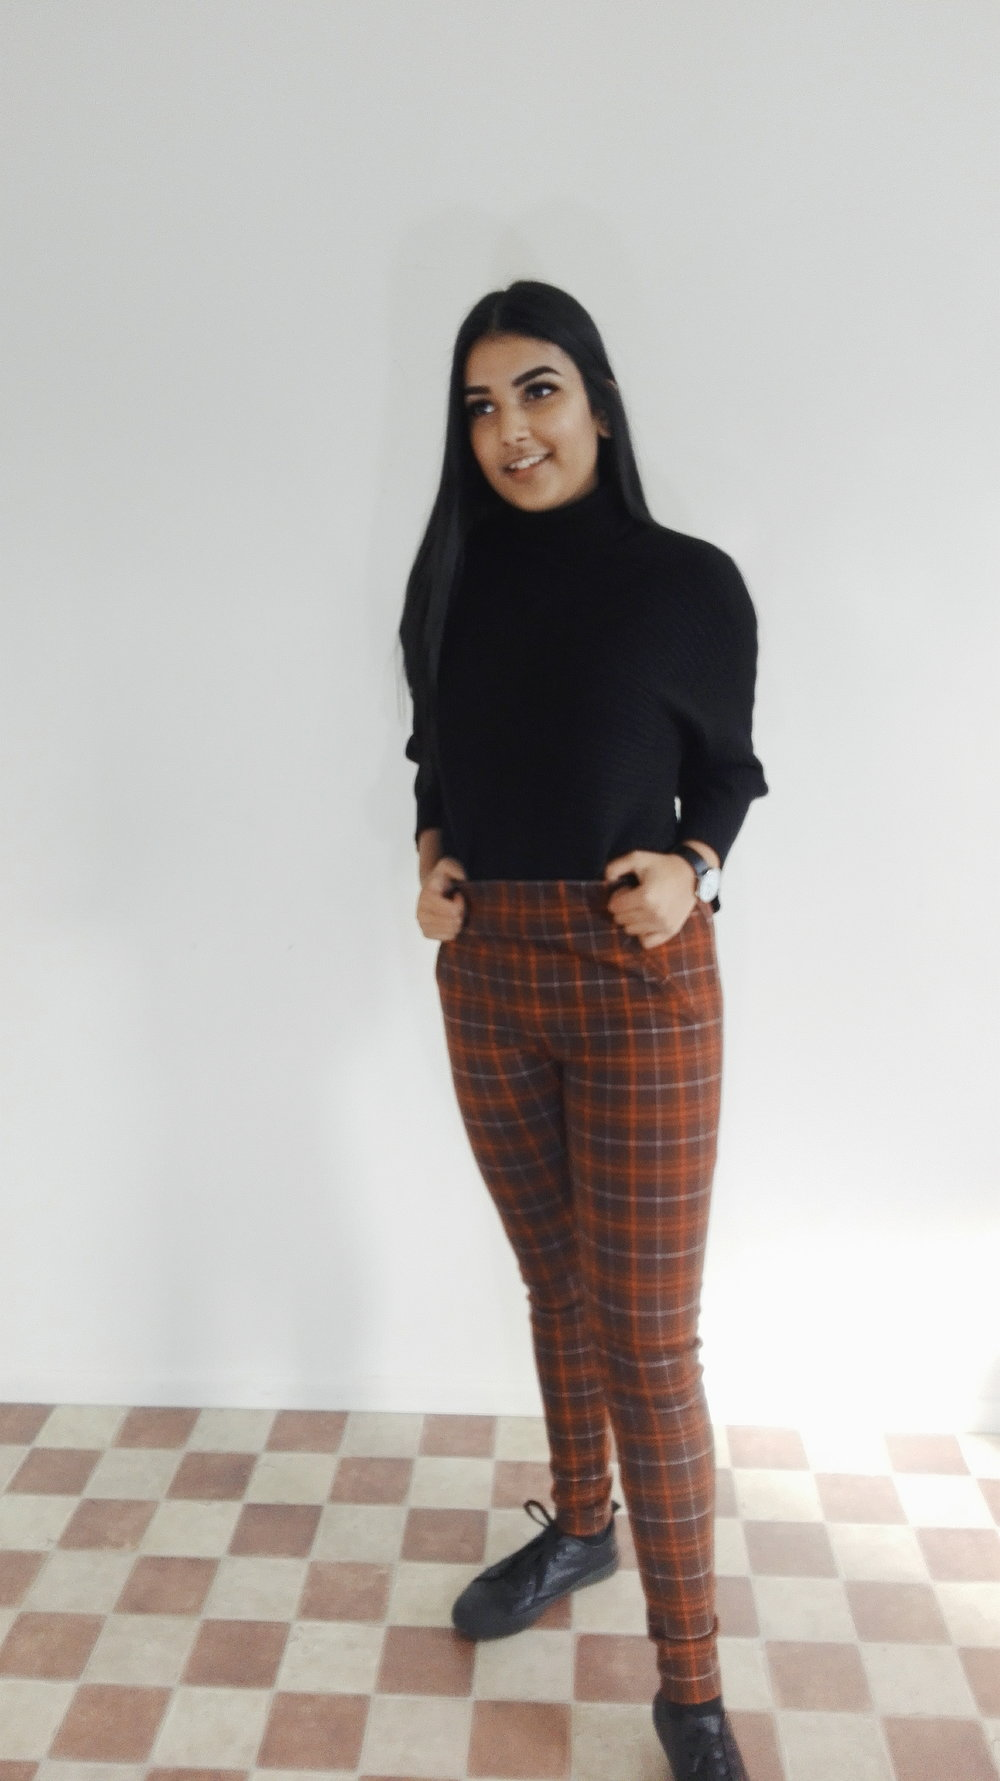 Don't need to hide the turtleneck, it makes a statement of its own. So if you bored with black jeans then switch out the bottoms for something bold like these plaid pants.